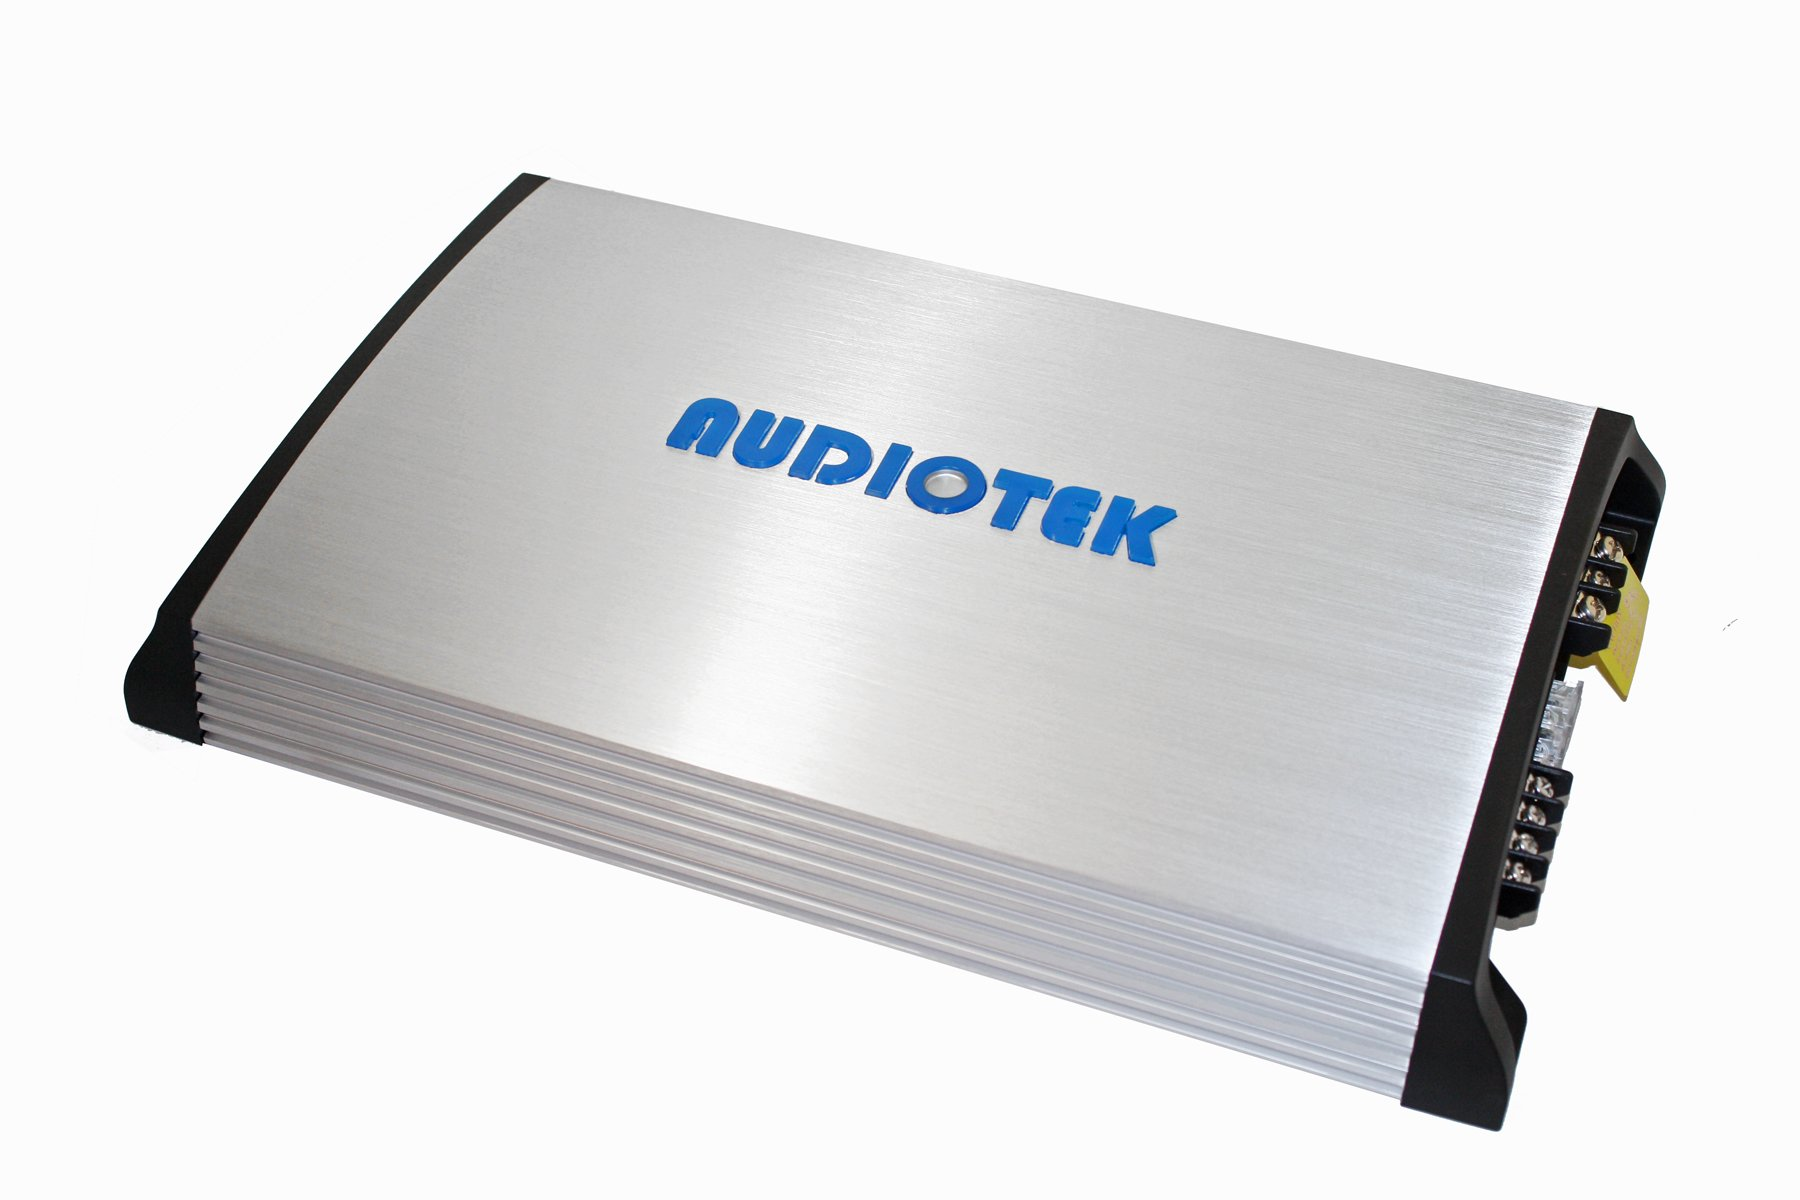 Audiotek At850S 2 Channels Class Ab 2 Ohm Stable 3200W Stereo Power Car Amplifier W/Bass Control